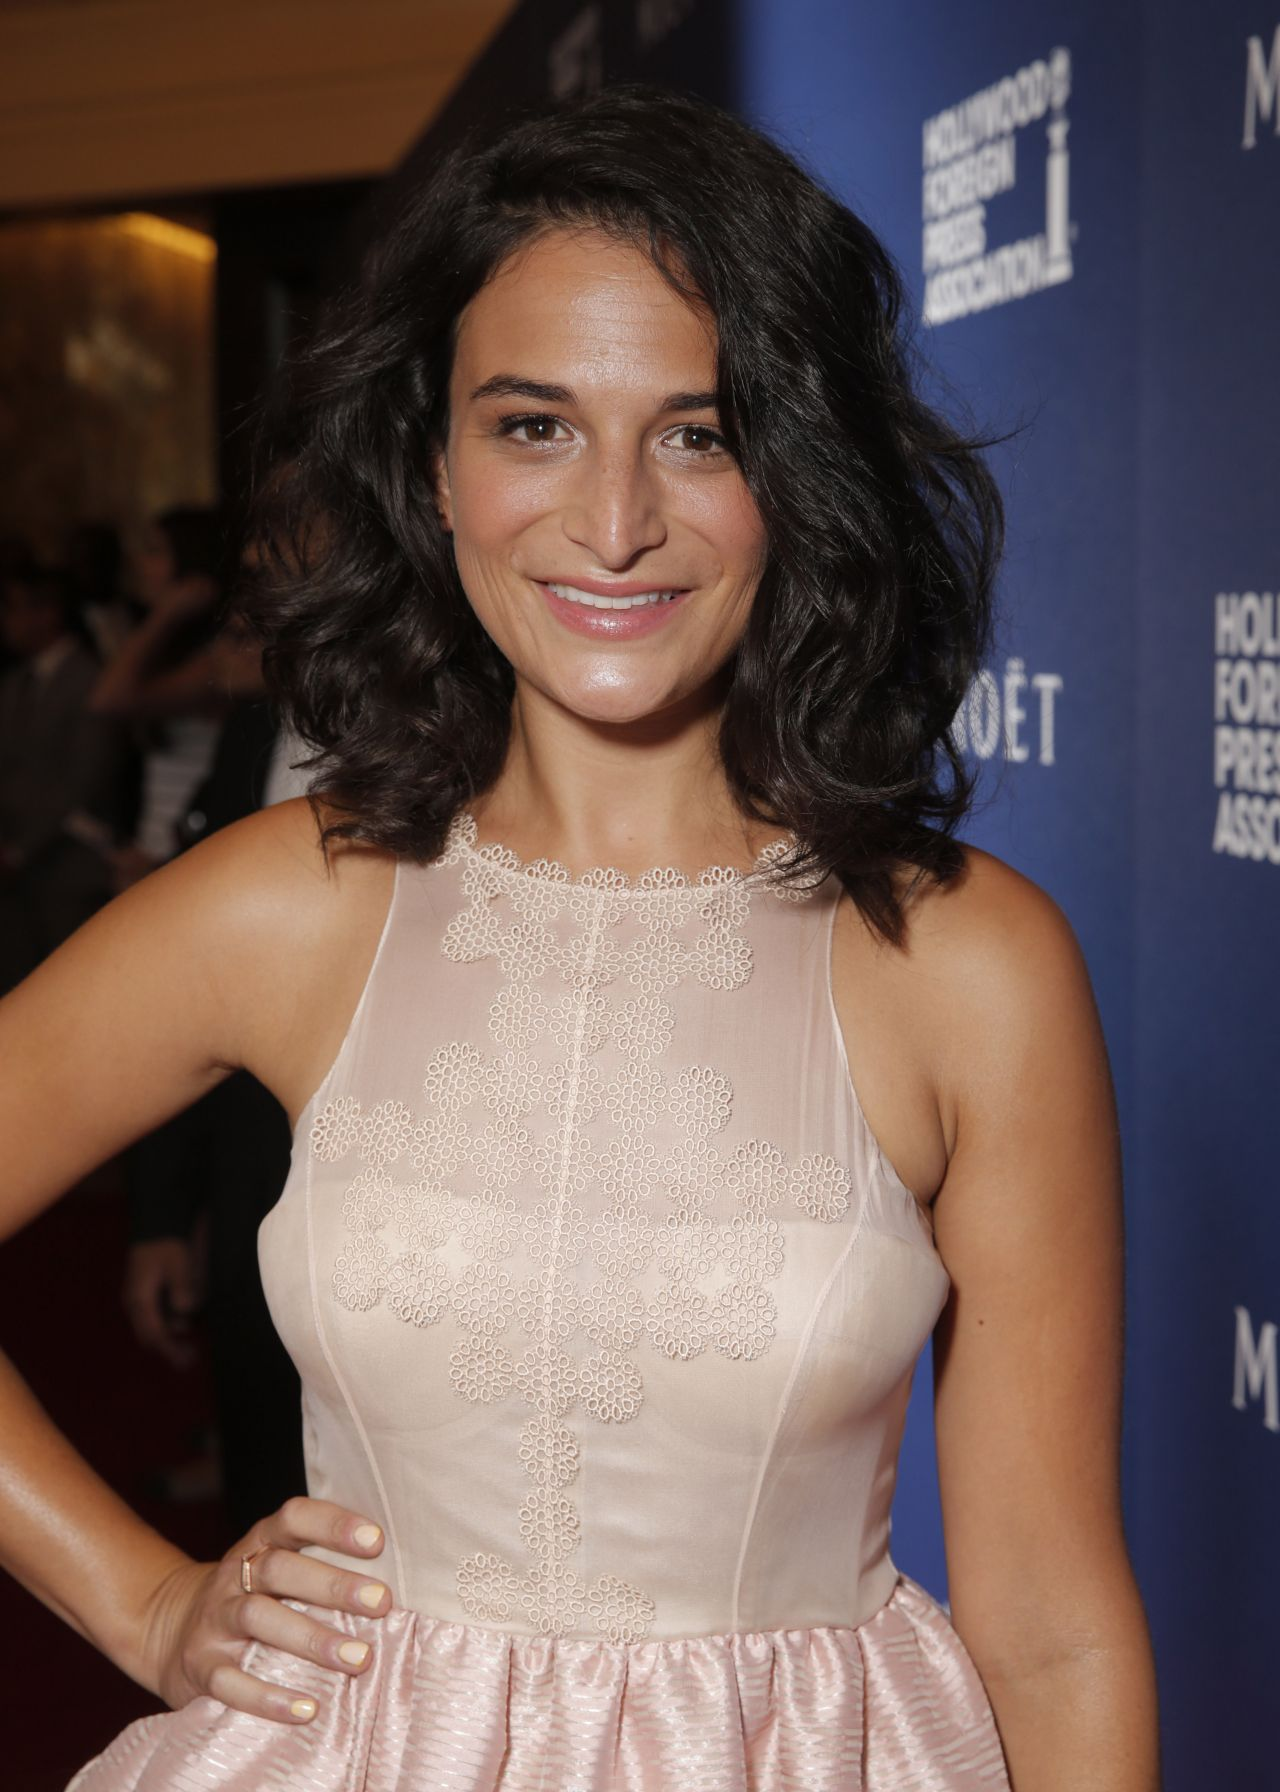 Jenny Slate At Hfpa Grants Banquet August 2014